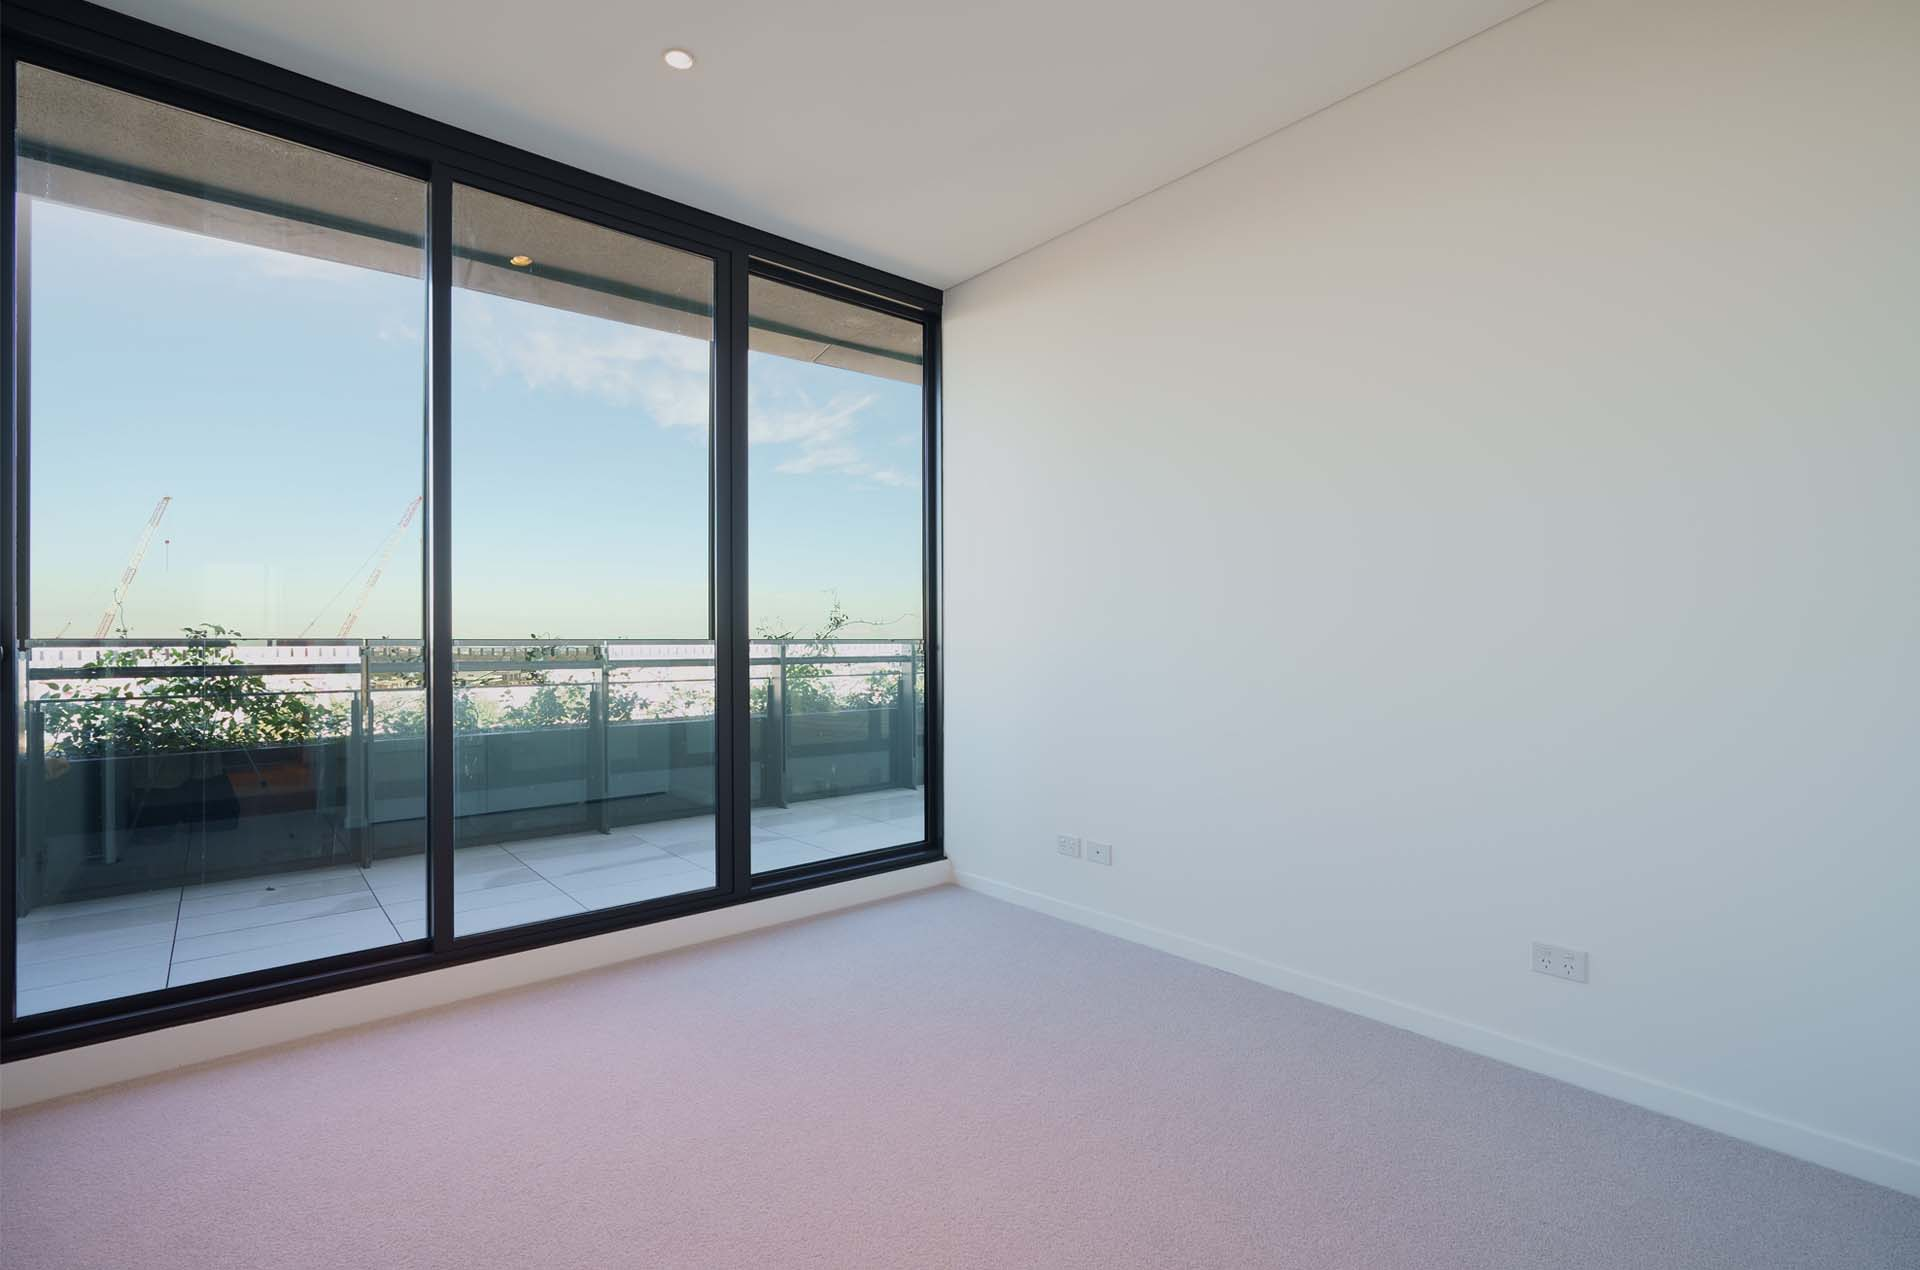 3 bedroom apartment for lease in infinity by crown